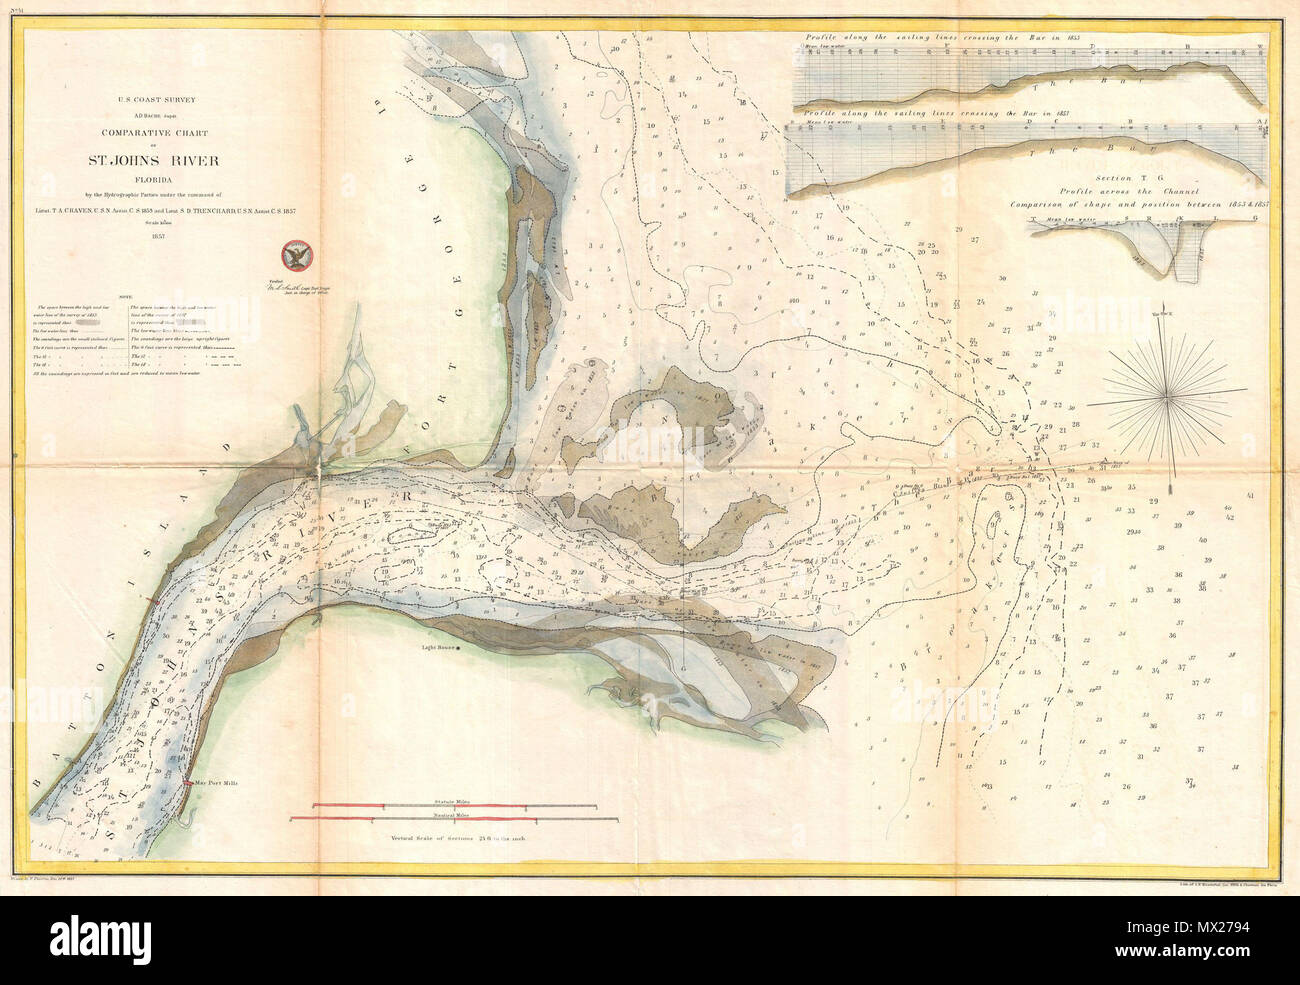 Coastal Map Of Florida.Comparative Chart Of St John S River Florida English An Unusual